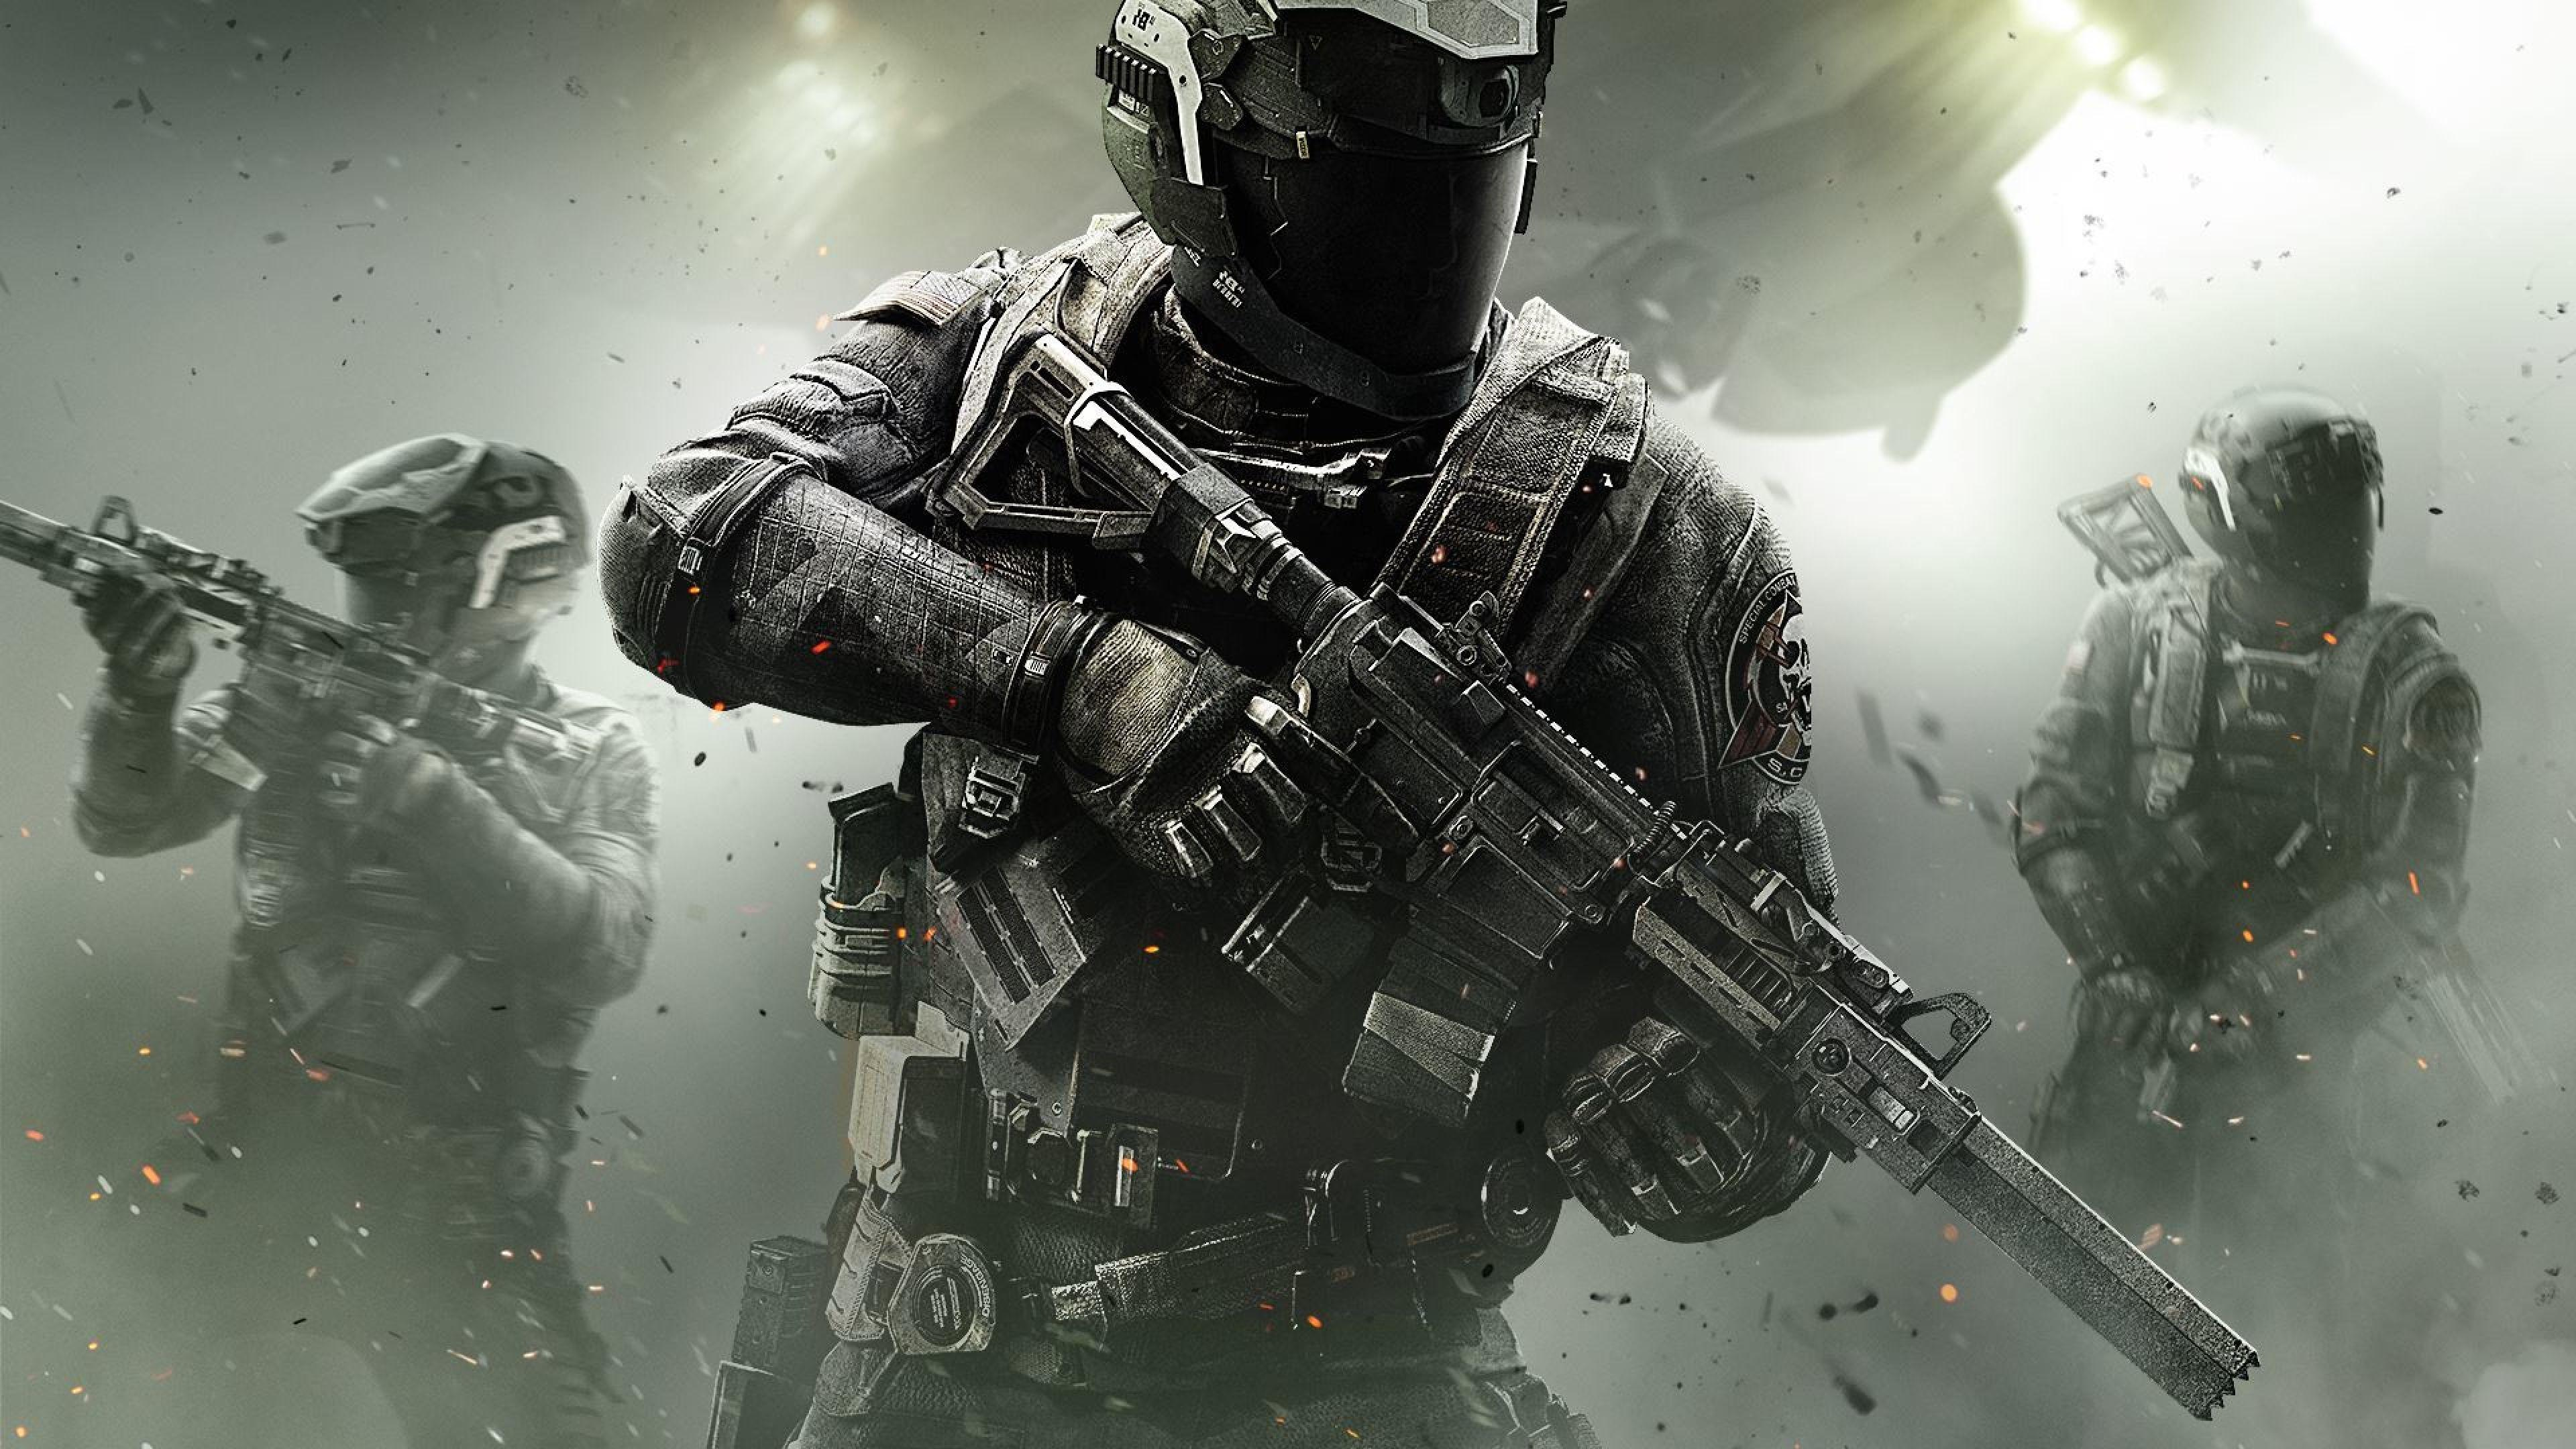 Download Wallpaper 3840x2160 Call of duty, Infinite warfare ...